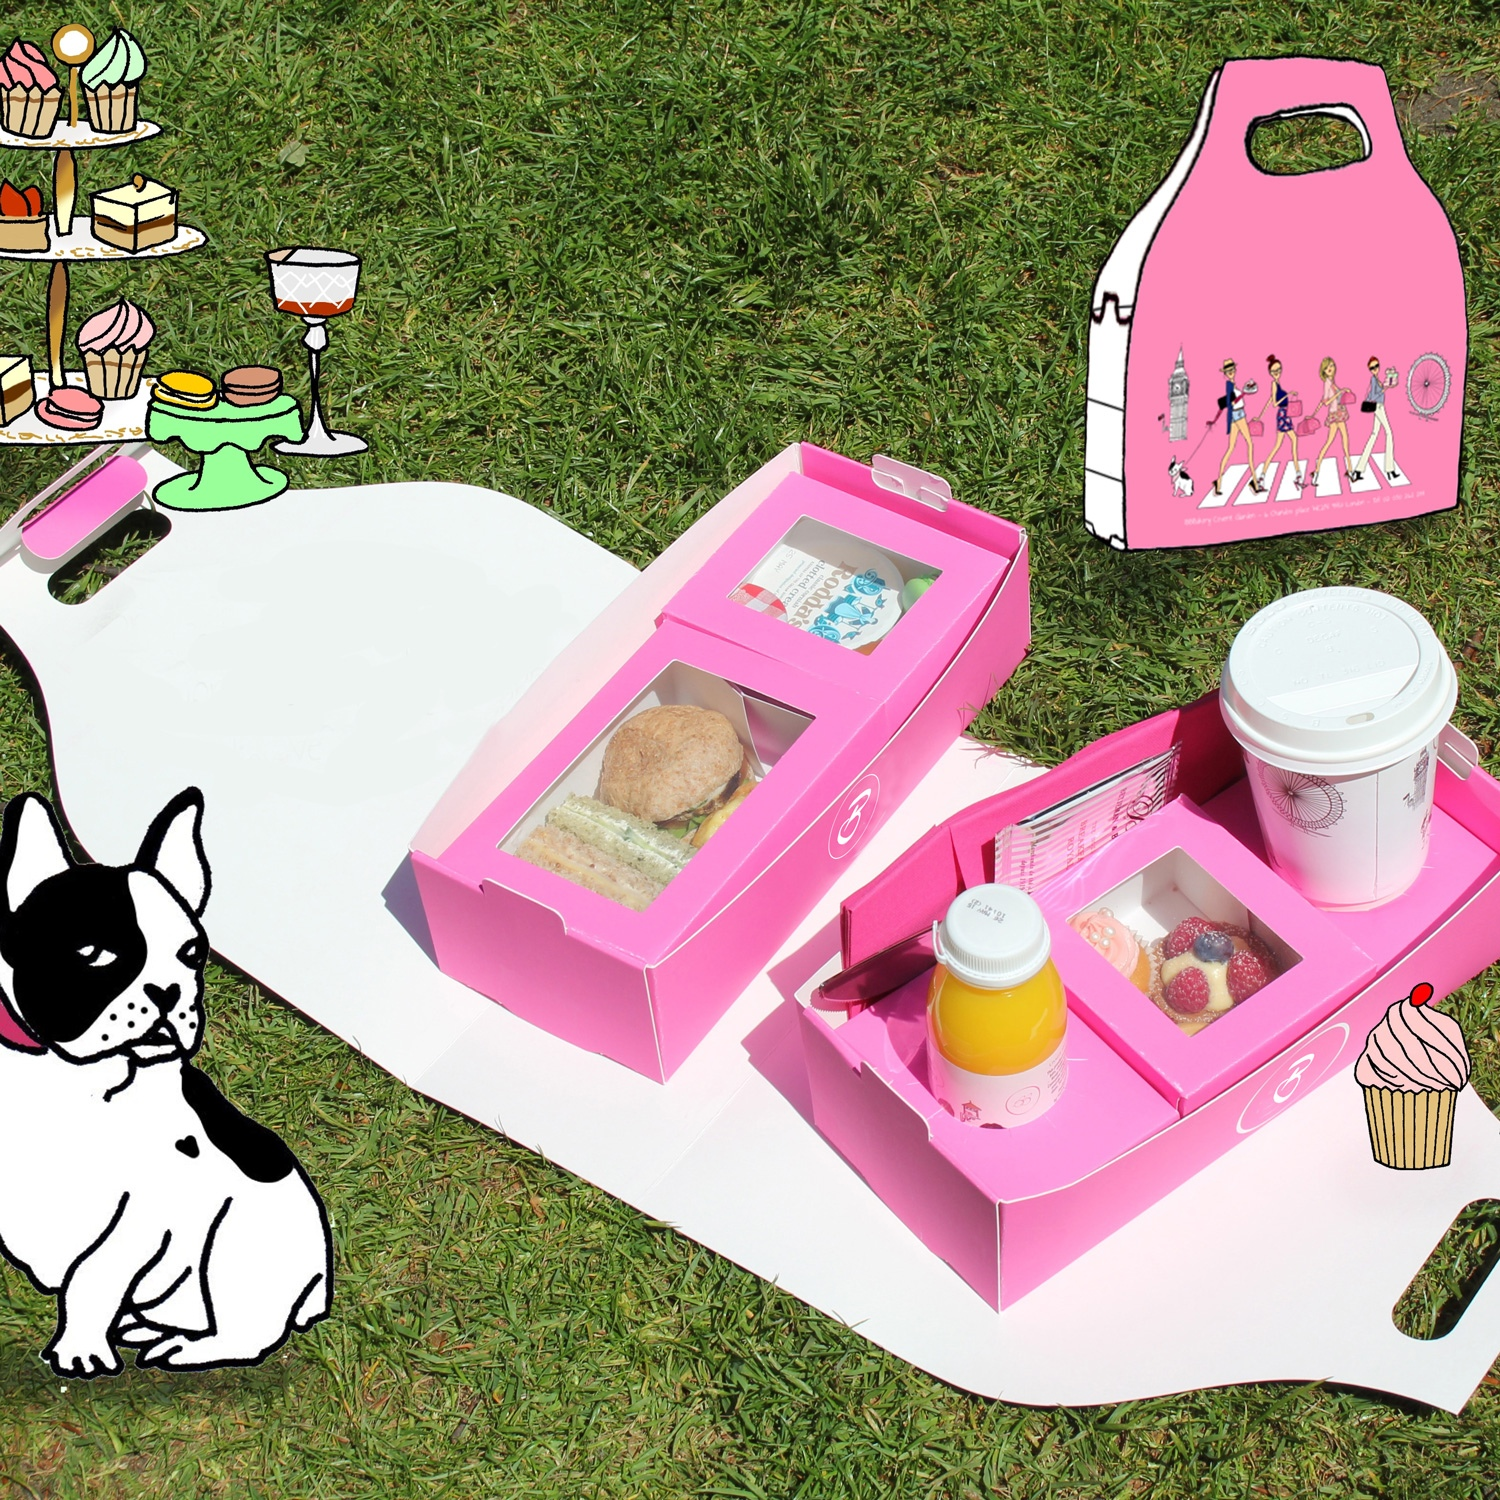 Escape the everyday - afternoon tea picnic